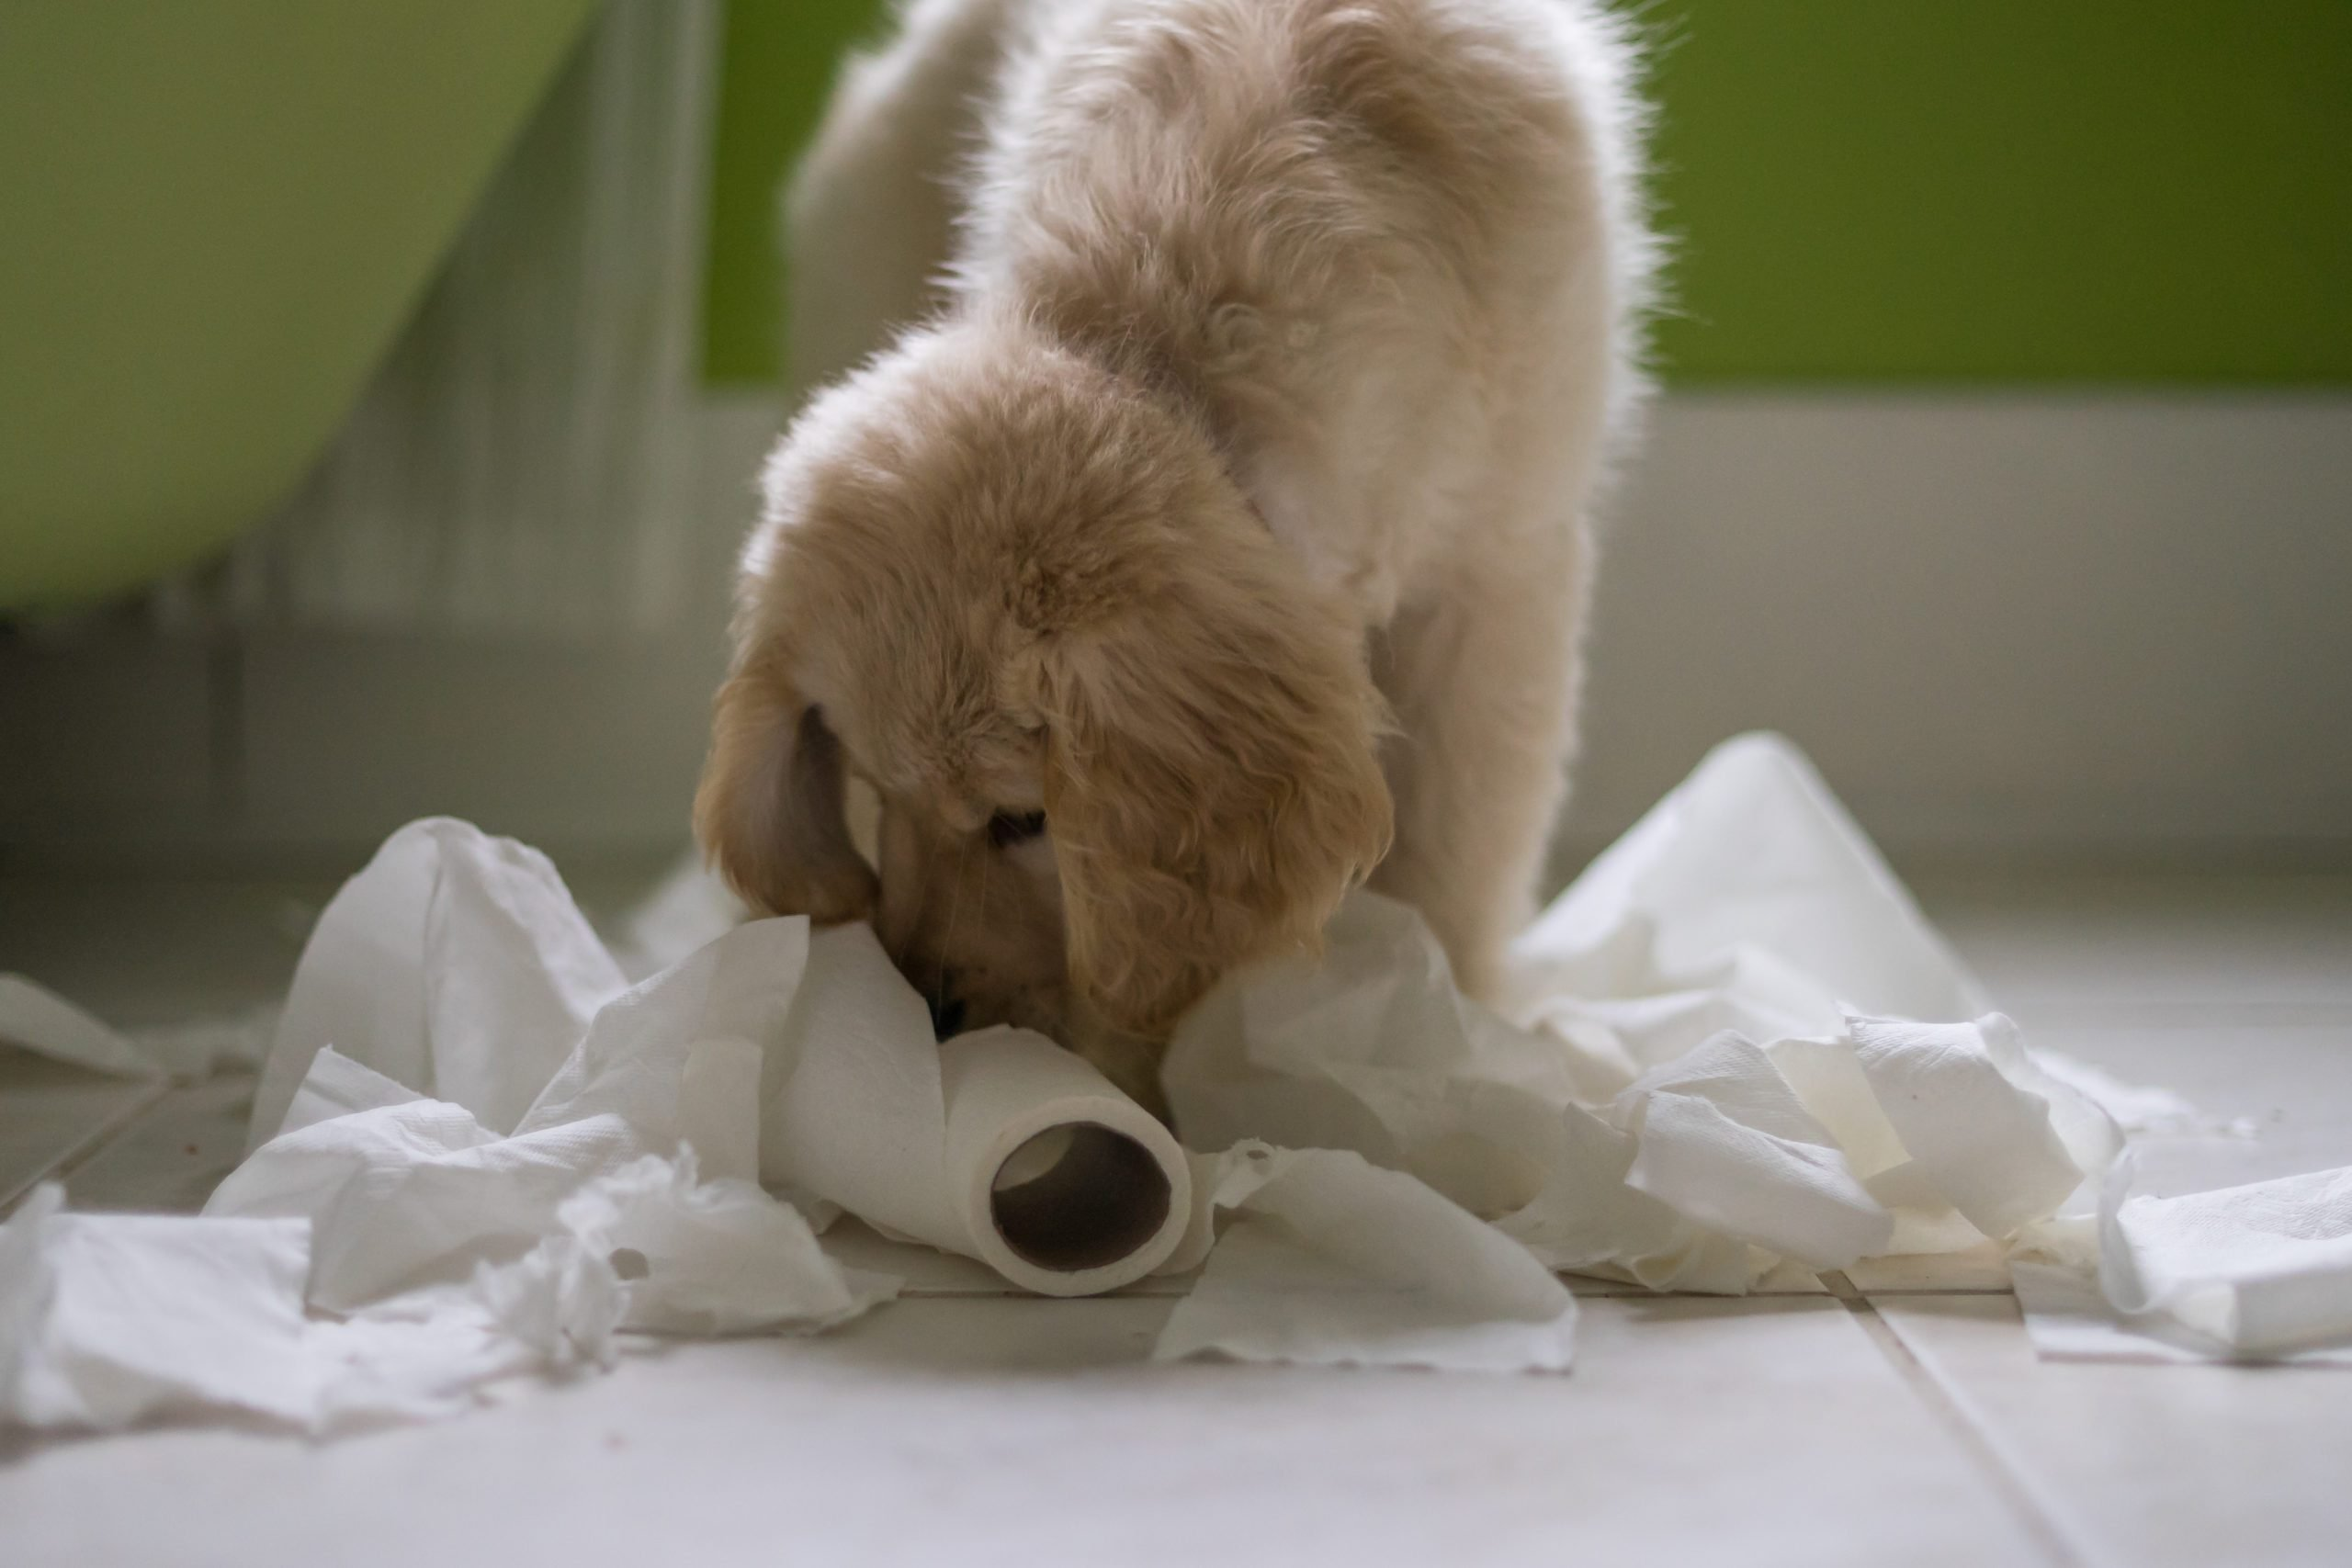 Golden retriever Puppy dog playing with toilet roll in bathroom